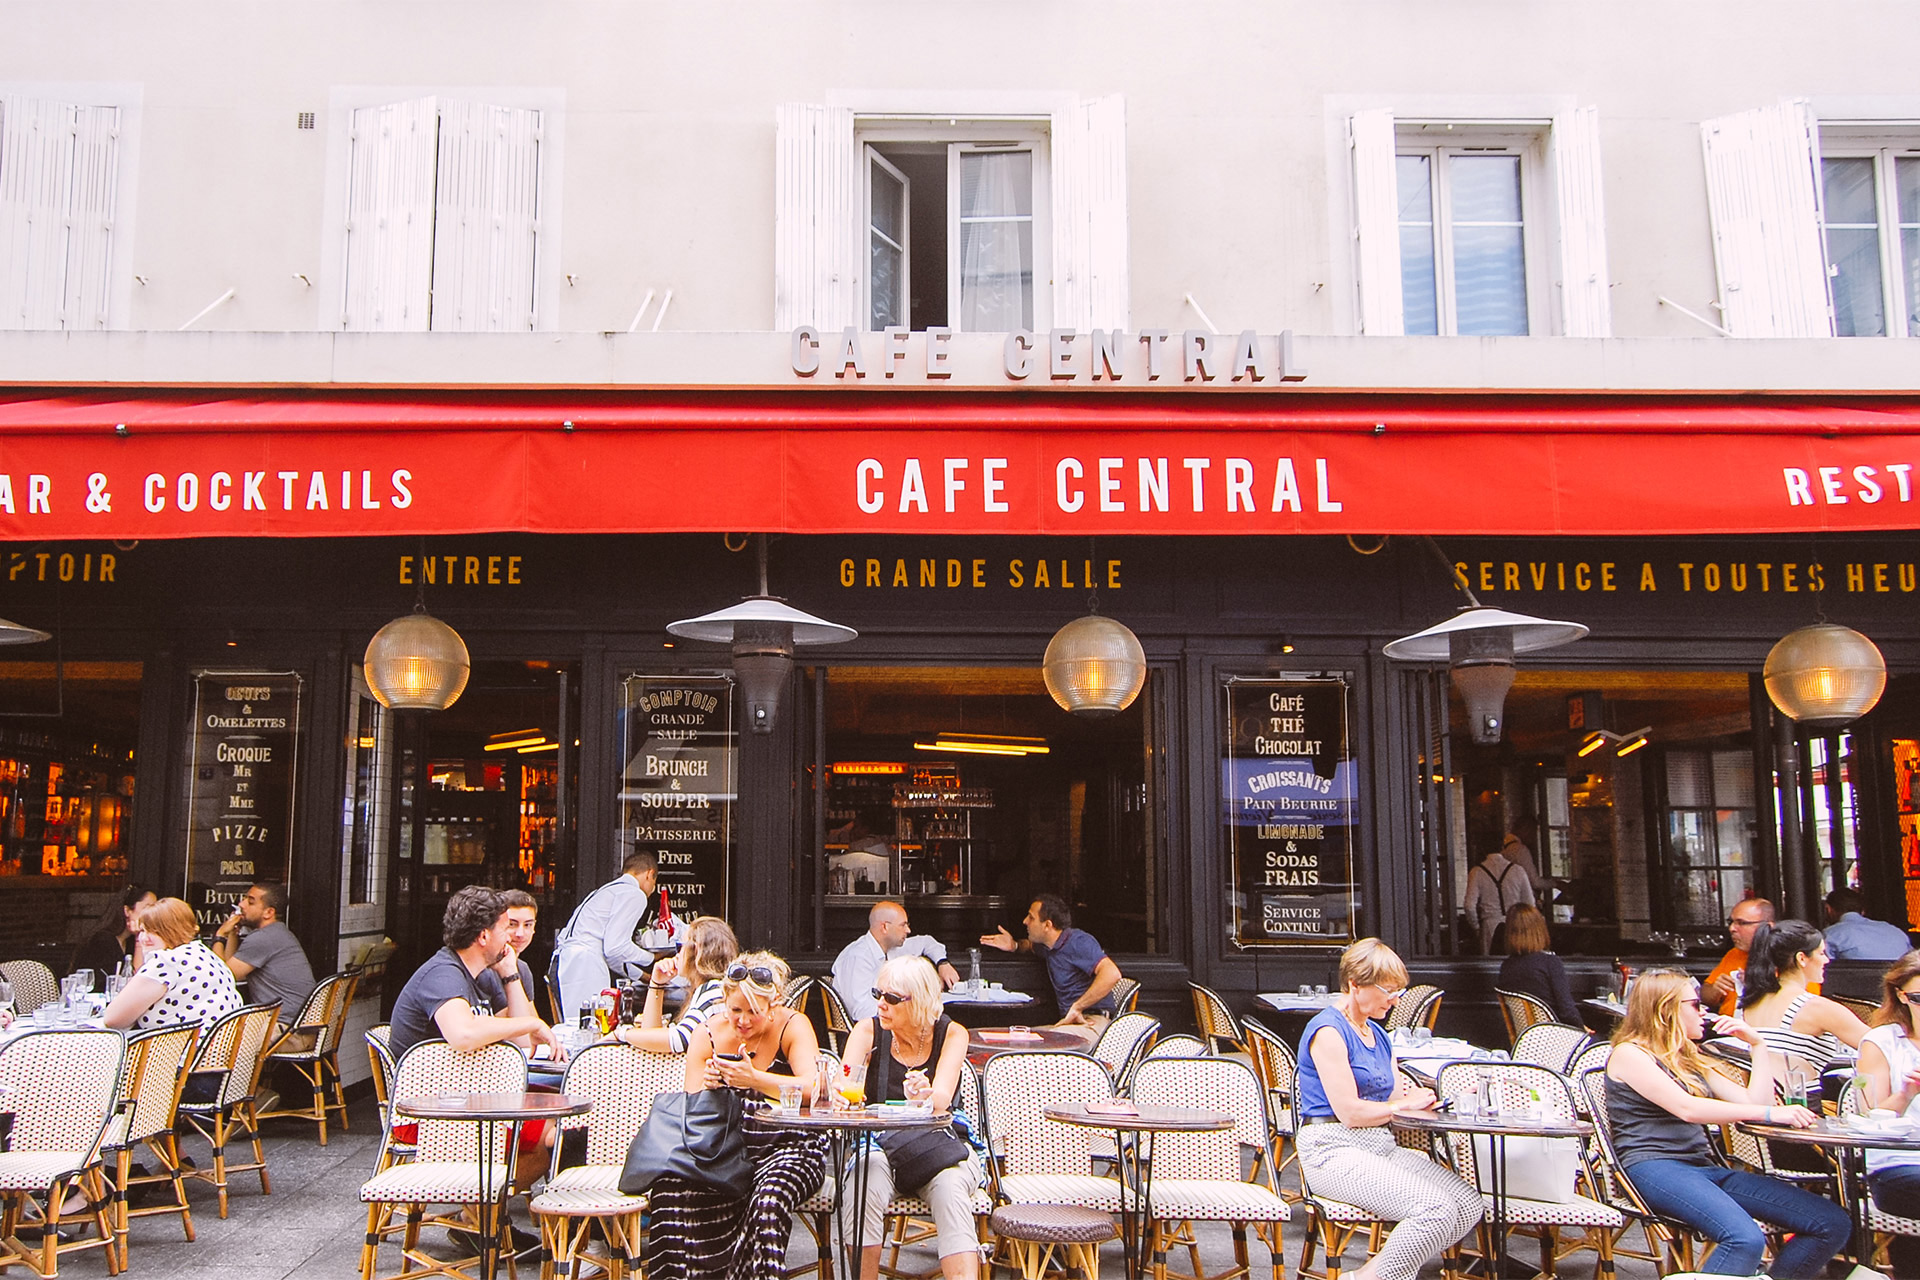 Cafe Central on Rue Cler in Paris